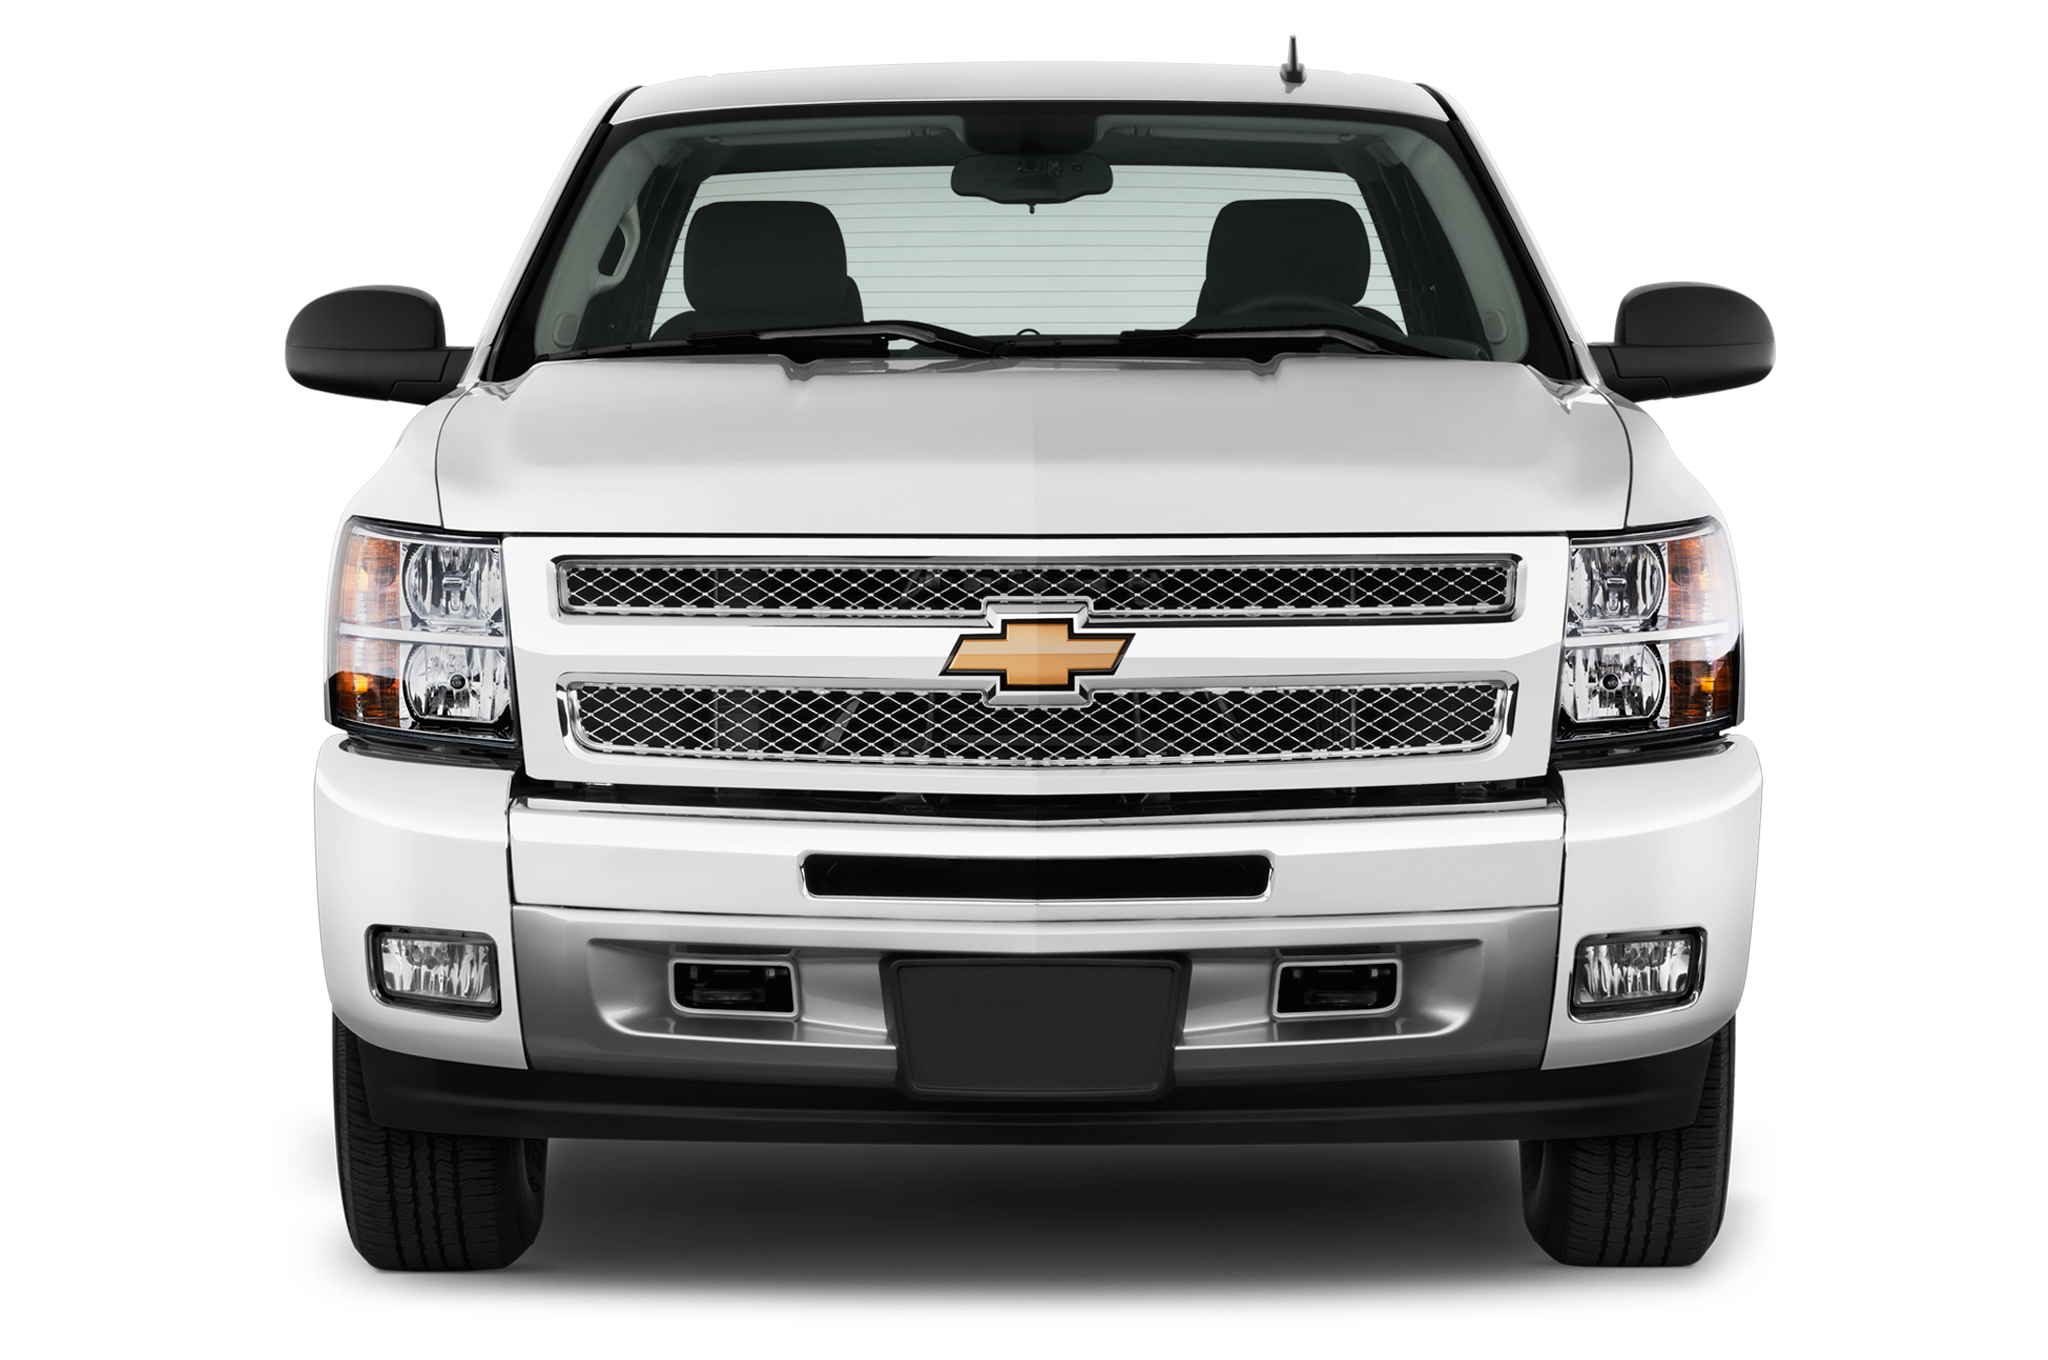 Chevrolet Silverado Lt Extended Cab Mwb Truck Front View